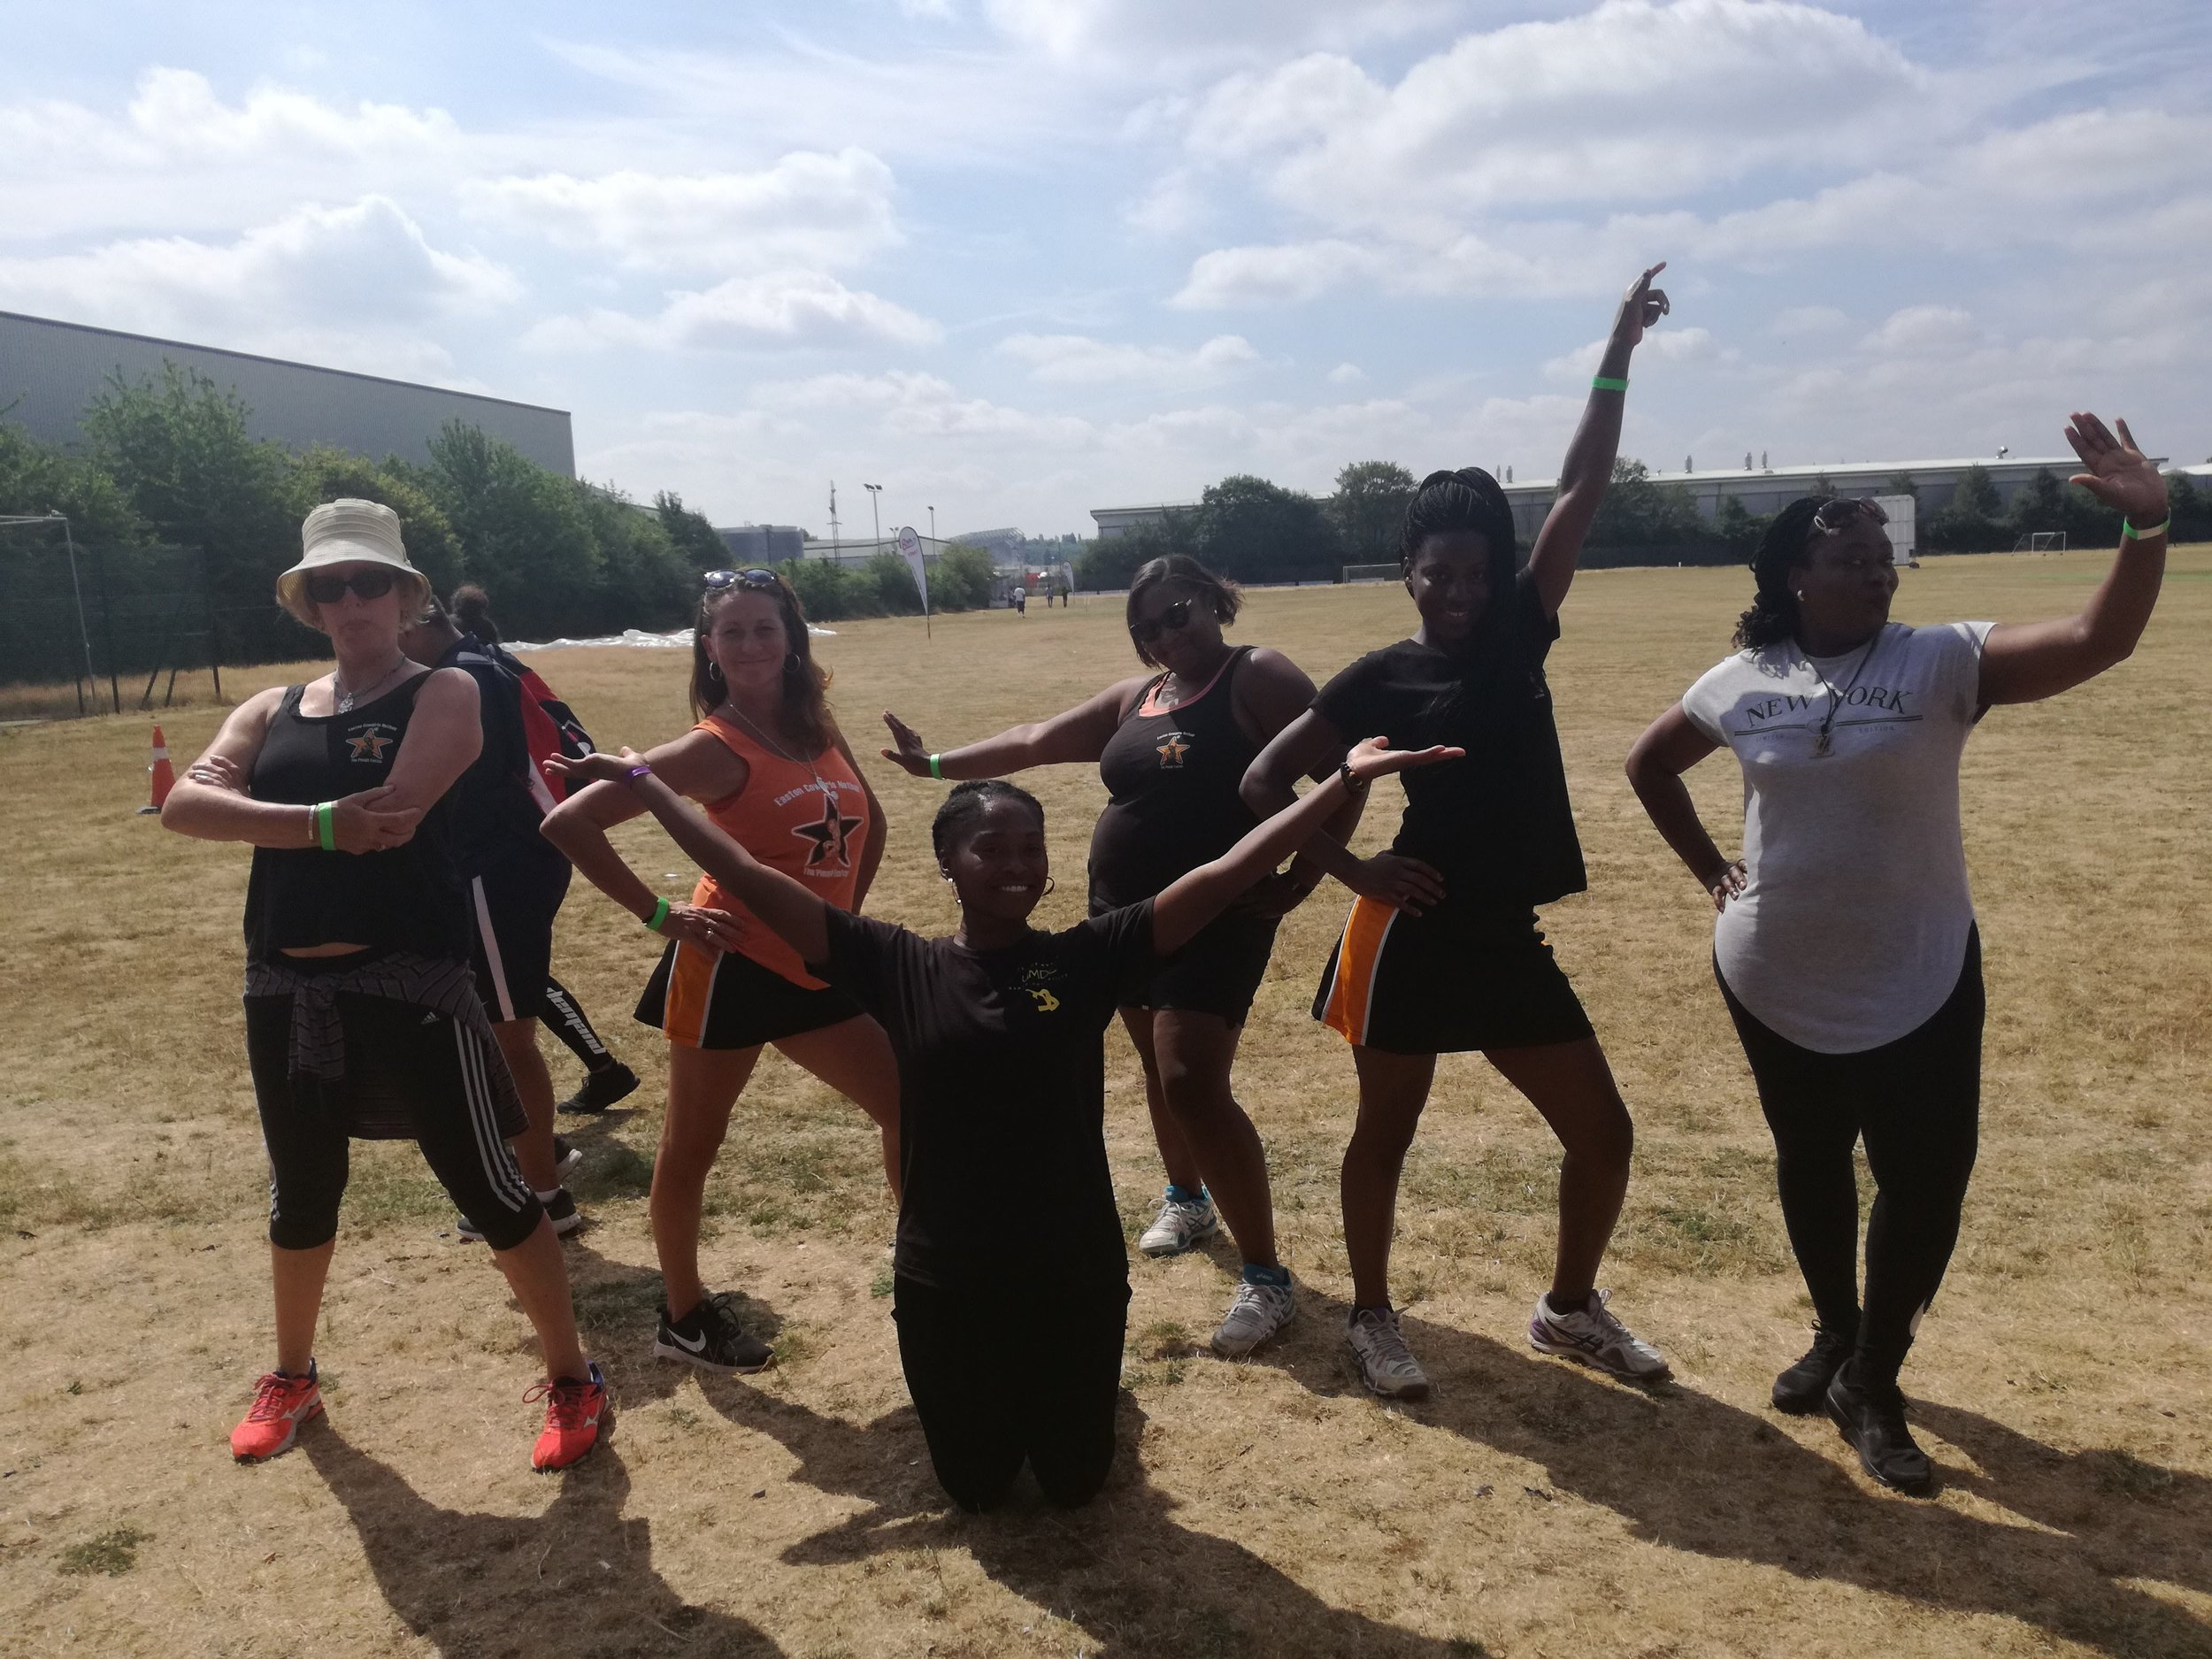 UNISON Sports Day event - Dance workshop